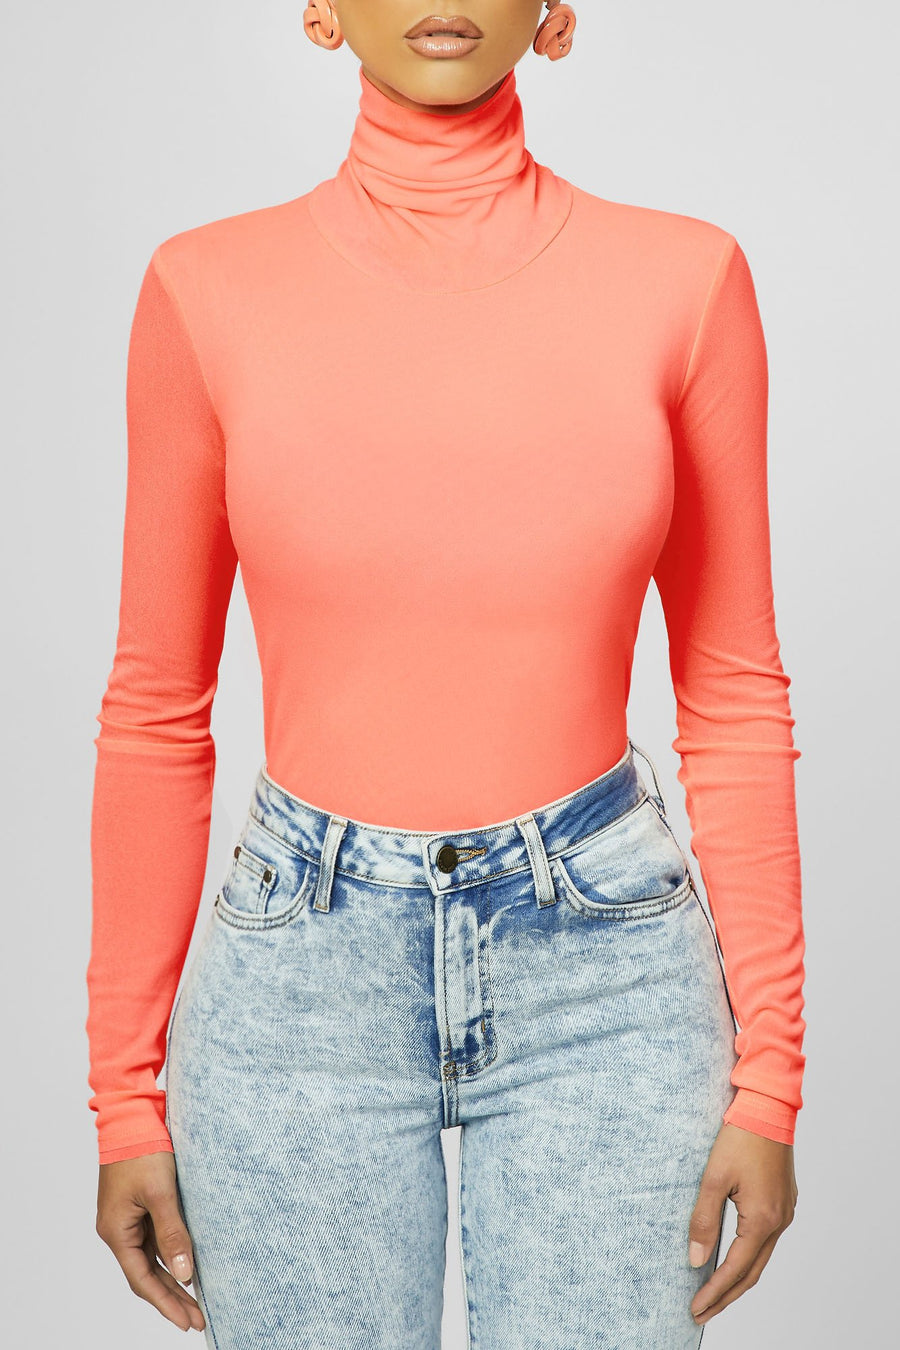 Neon Obsession Turtle Neck